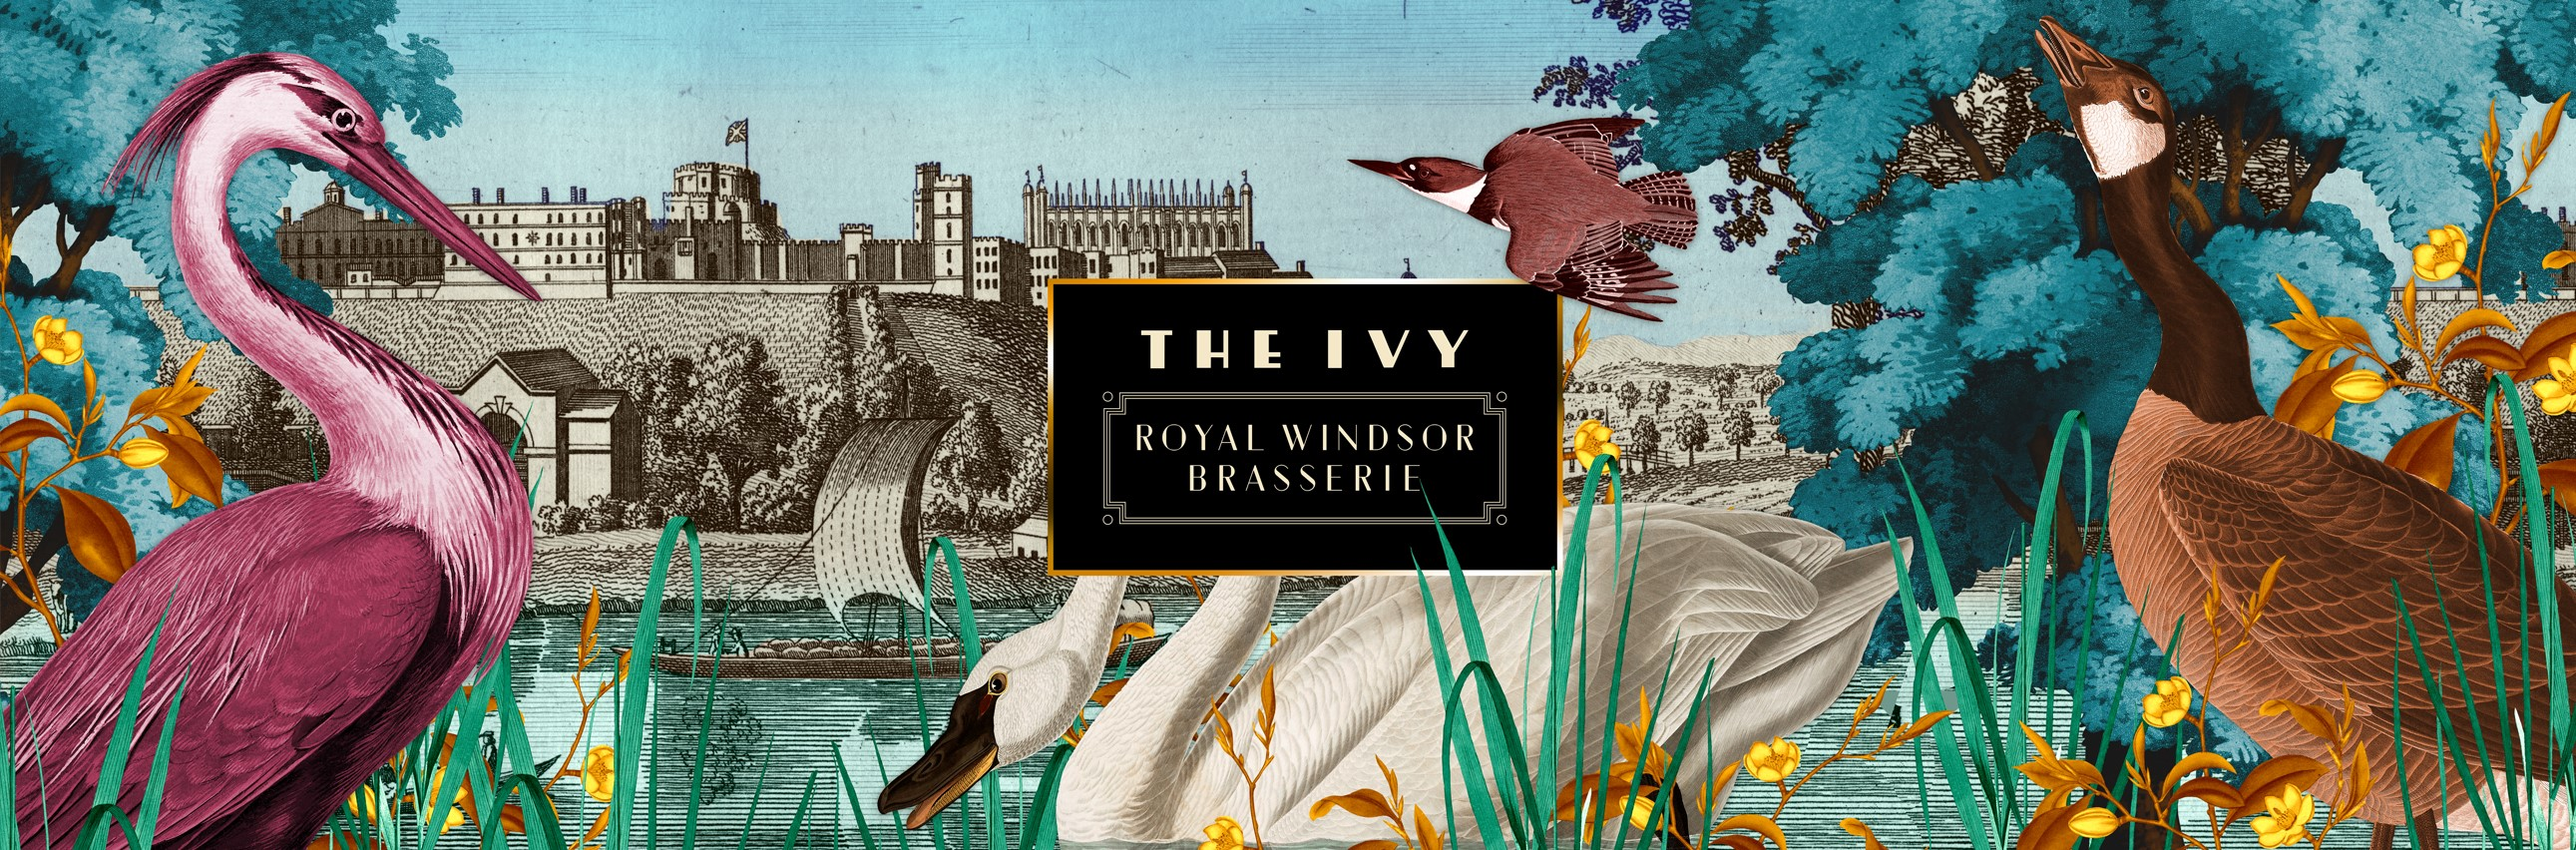 Sign up to our newsletter - The Ivy Royal Windsor